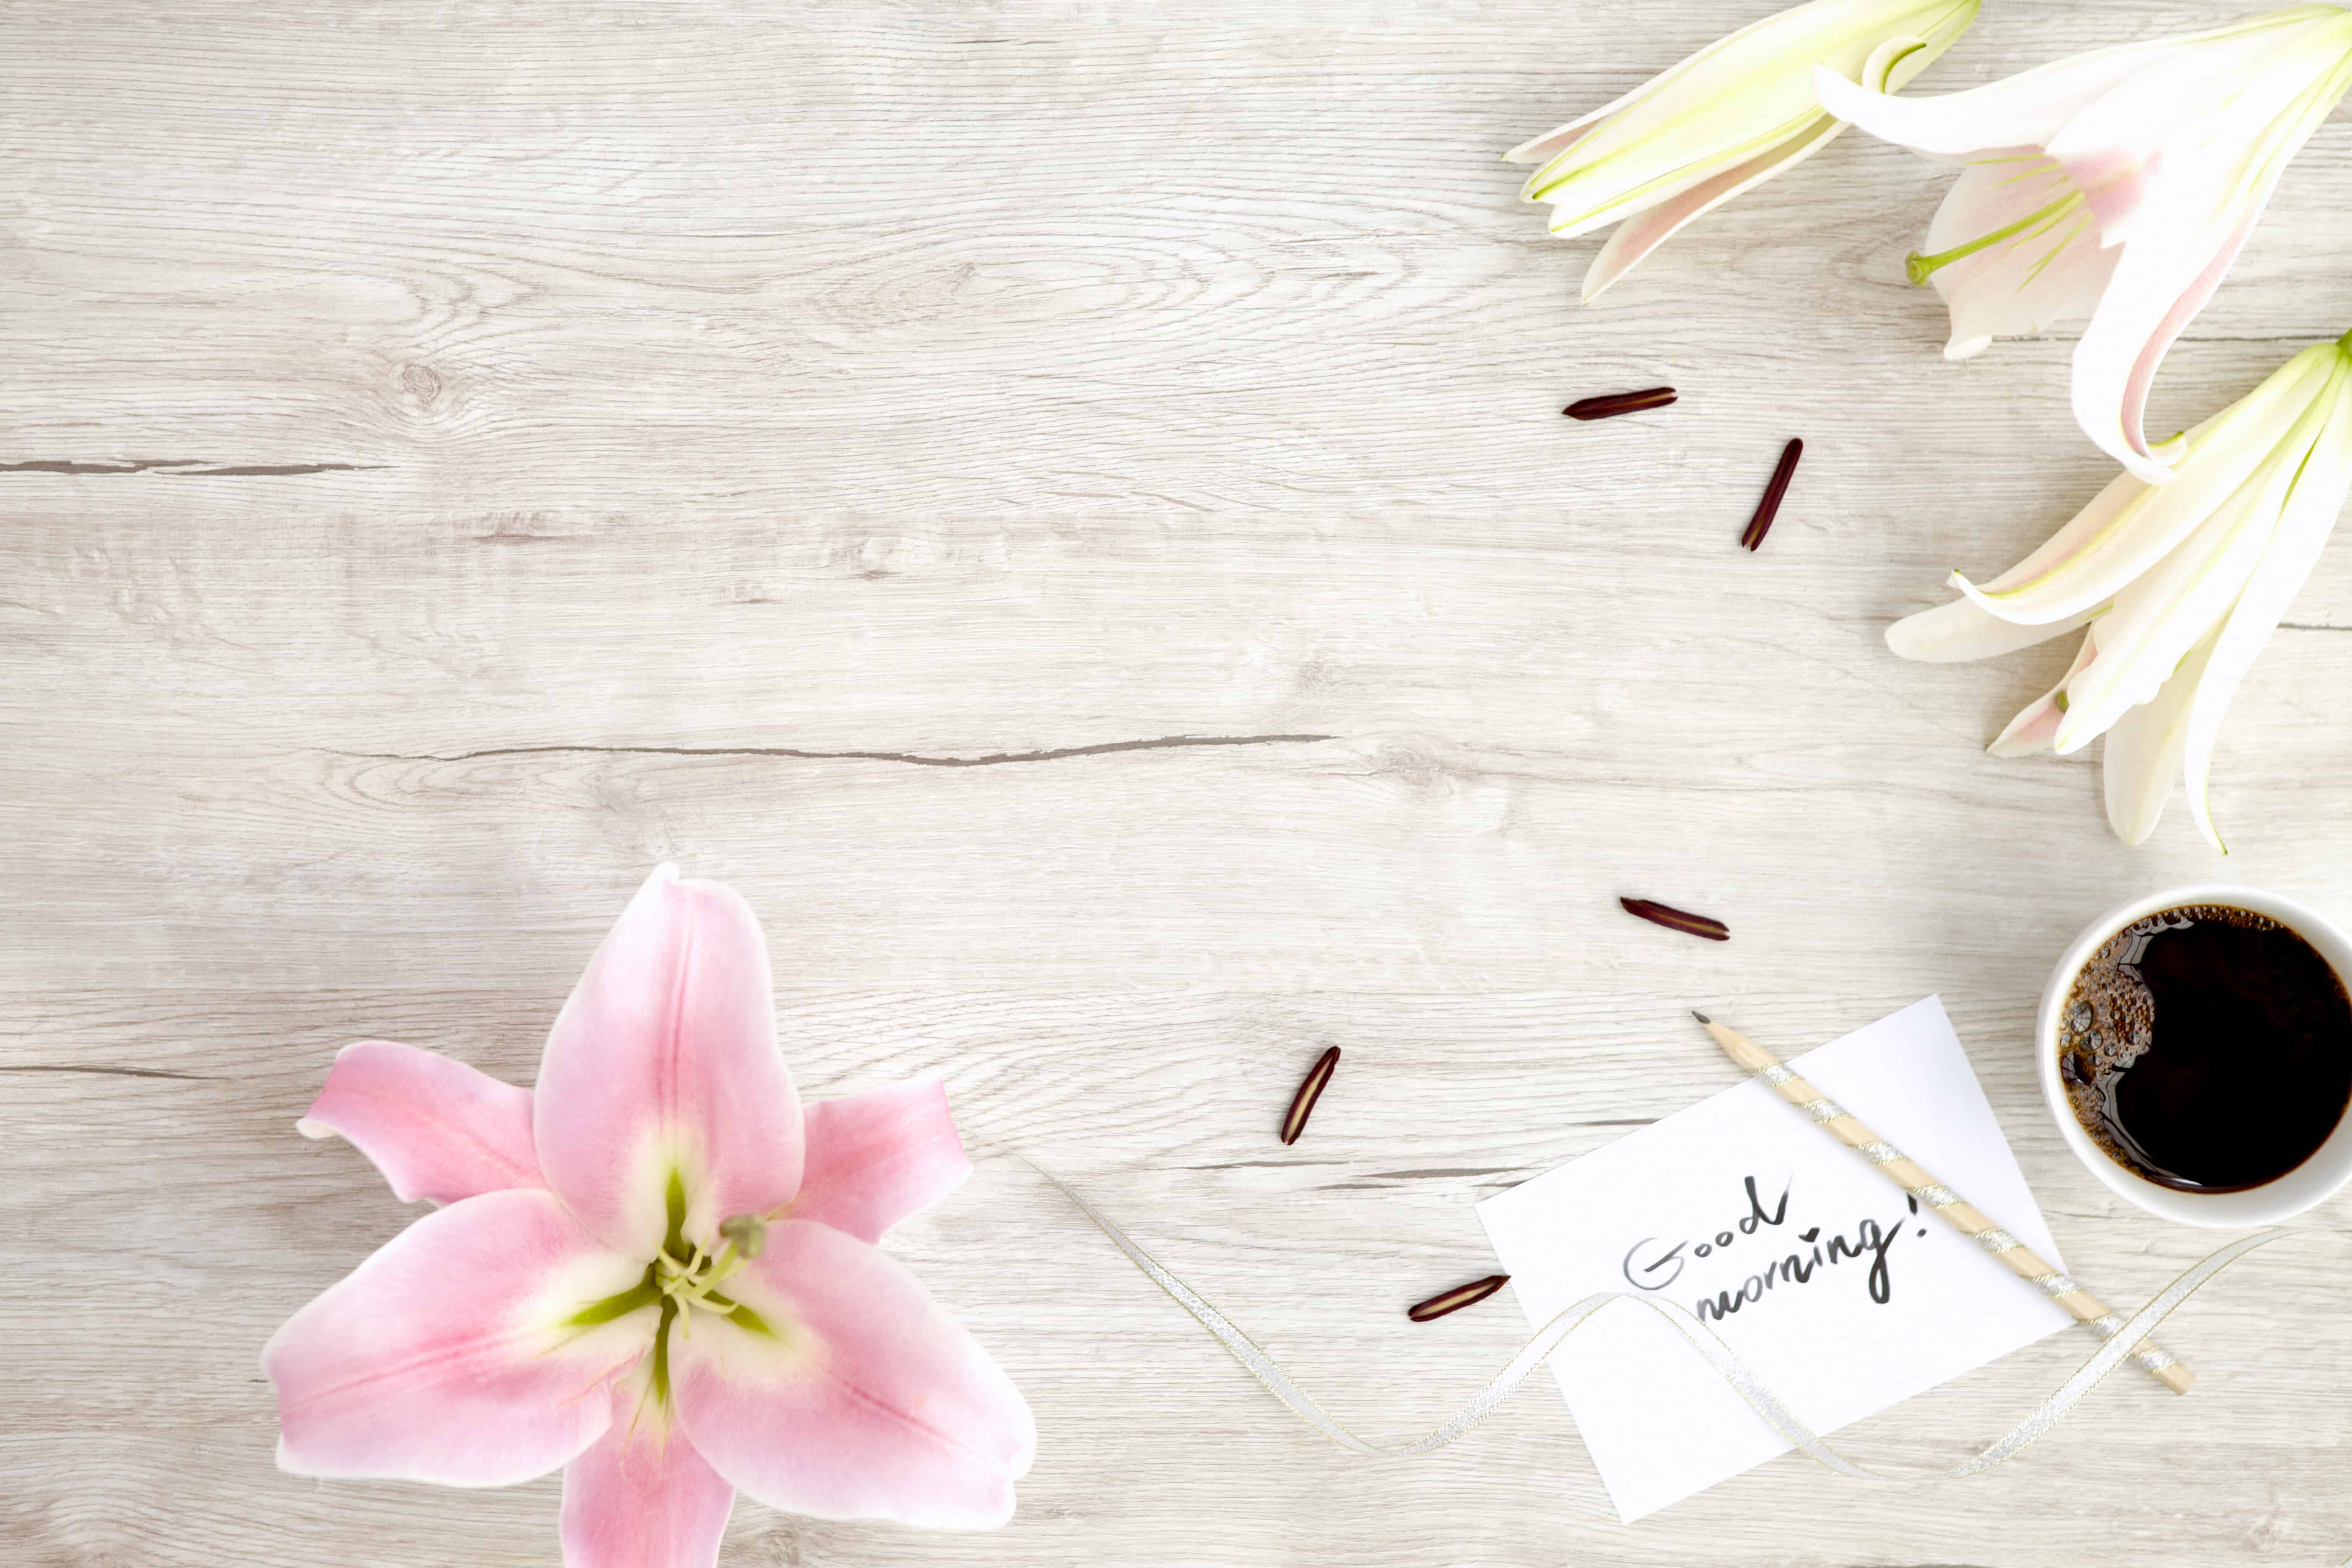 Create a morning routine with this simple morning routine template.